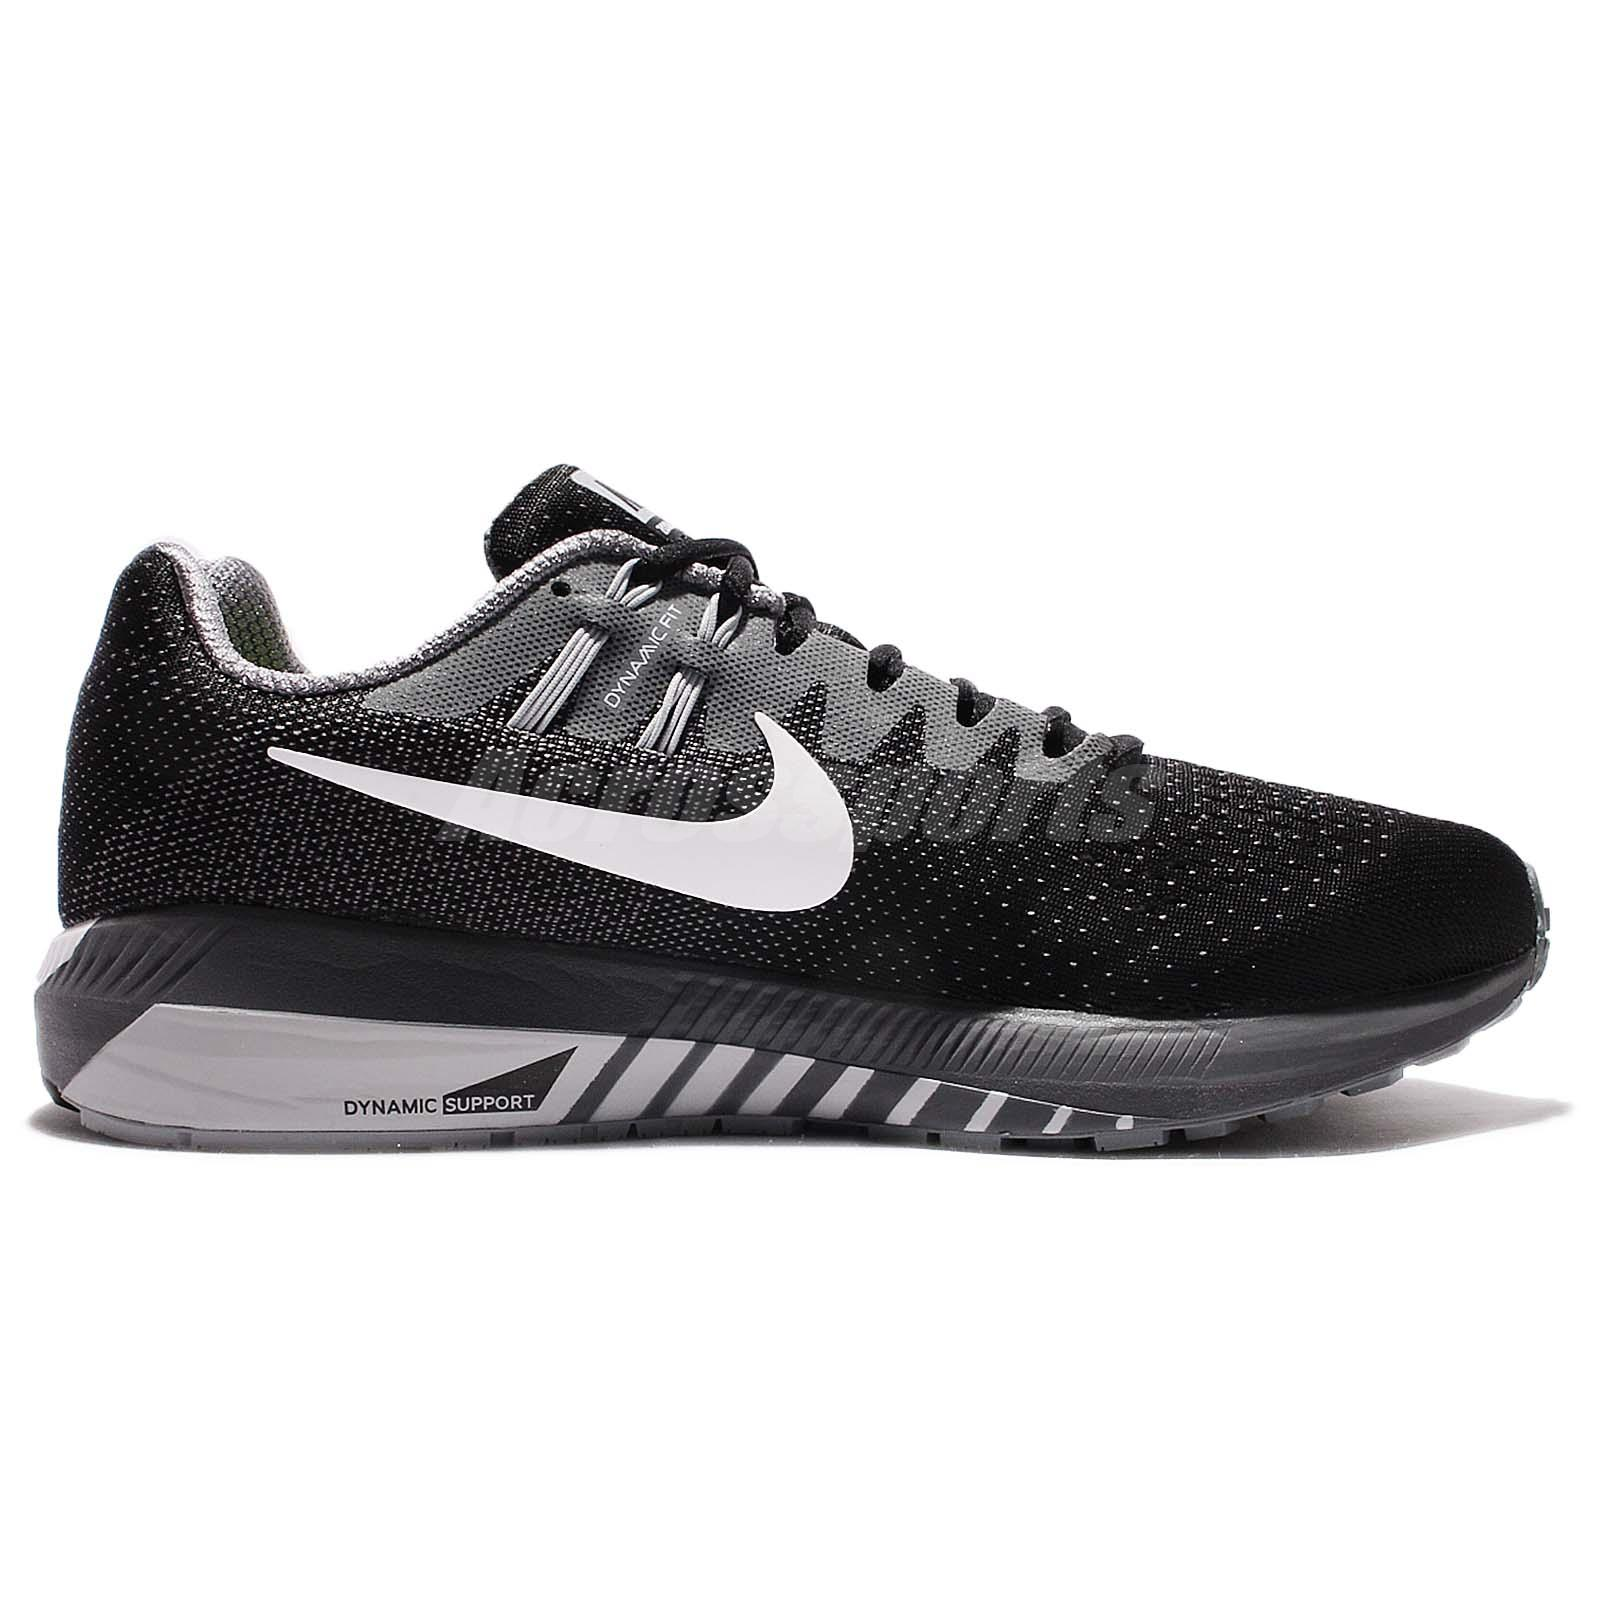 fb155a0776054 ... shipping condition brand new with box 8ae85 2f8e1 free shipping  condition brand new with box 8ae85 2f8e1  reduced nike mens air zoom  structure 20 black ...